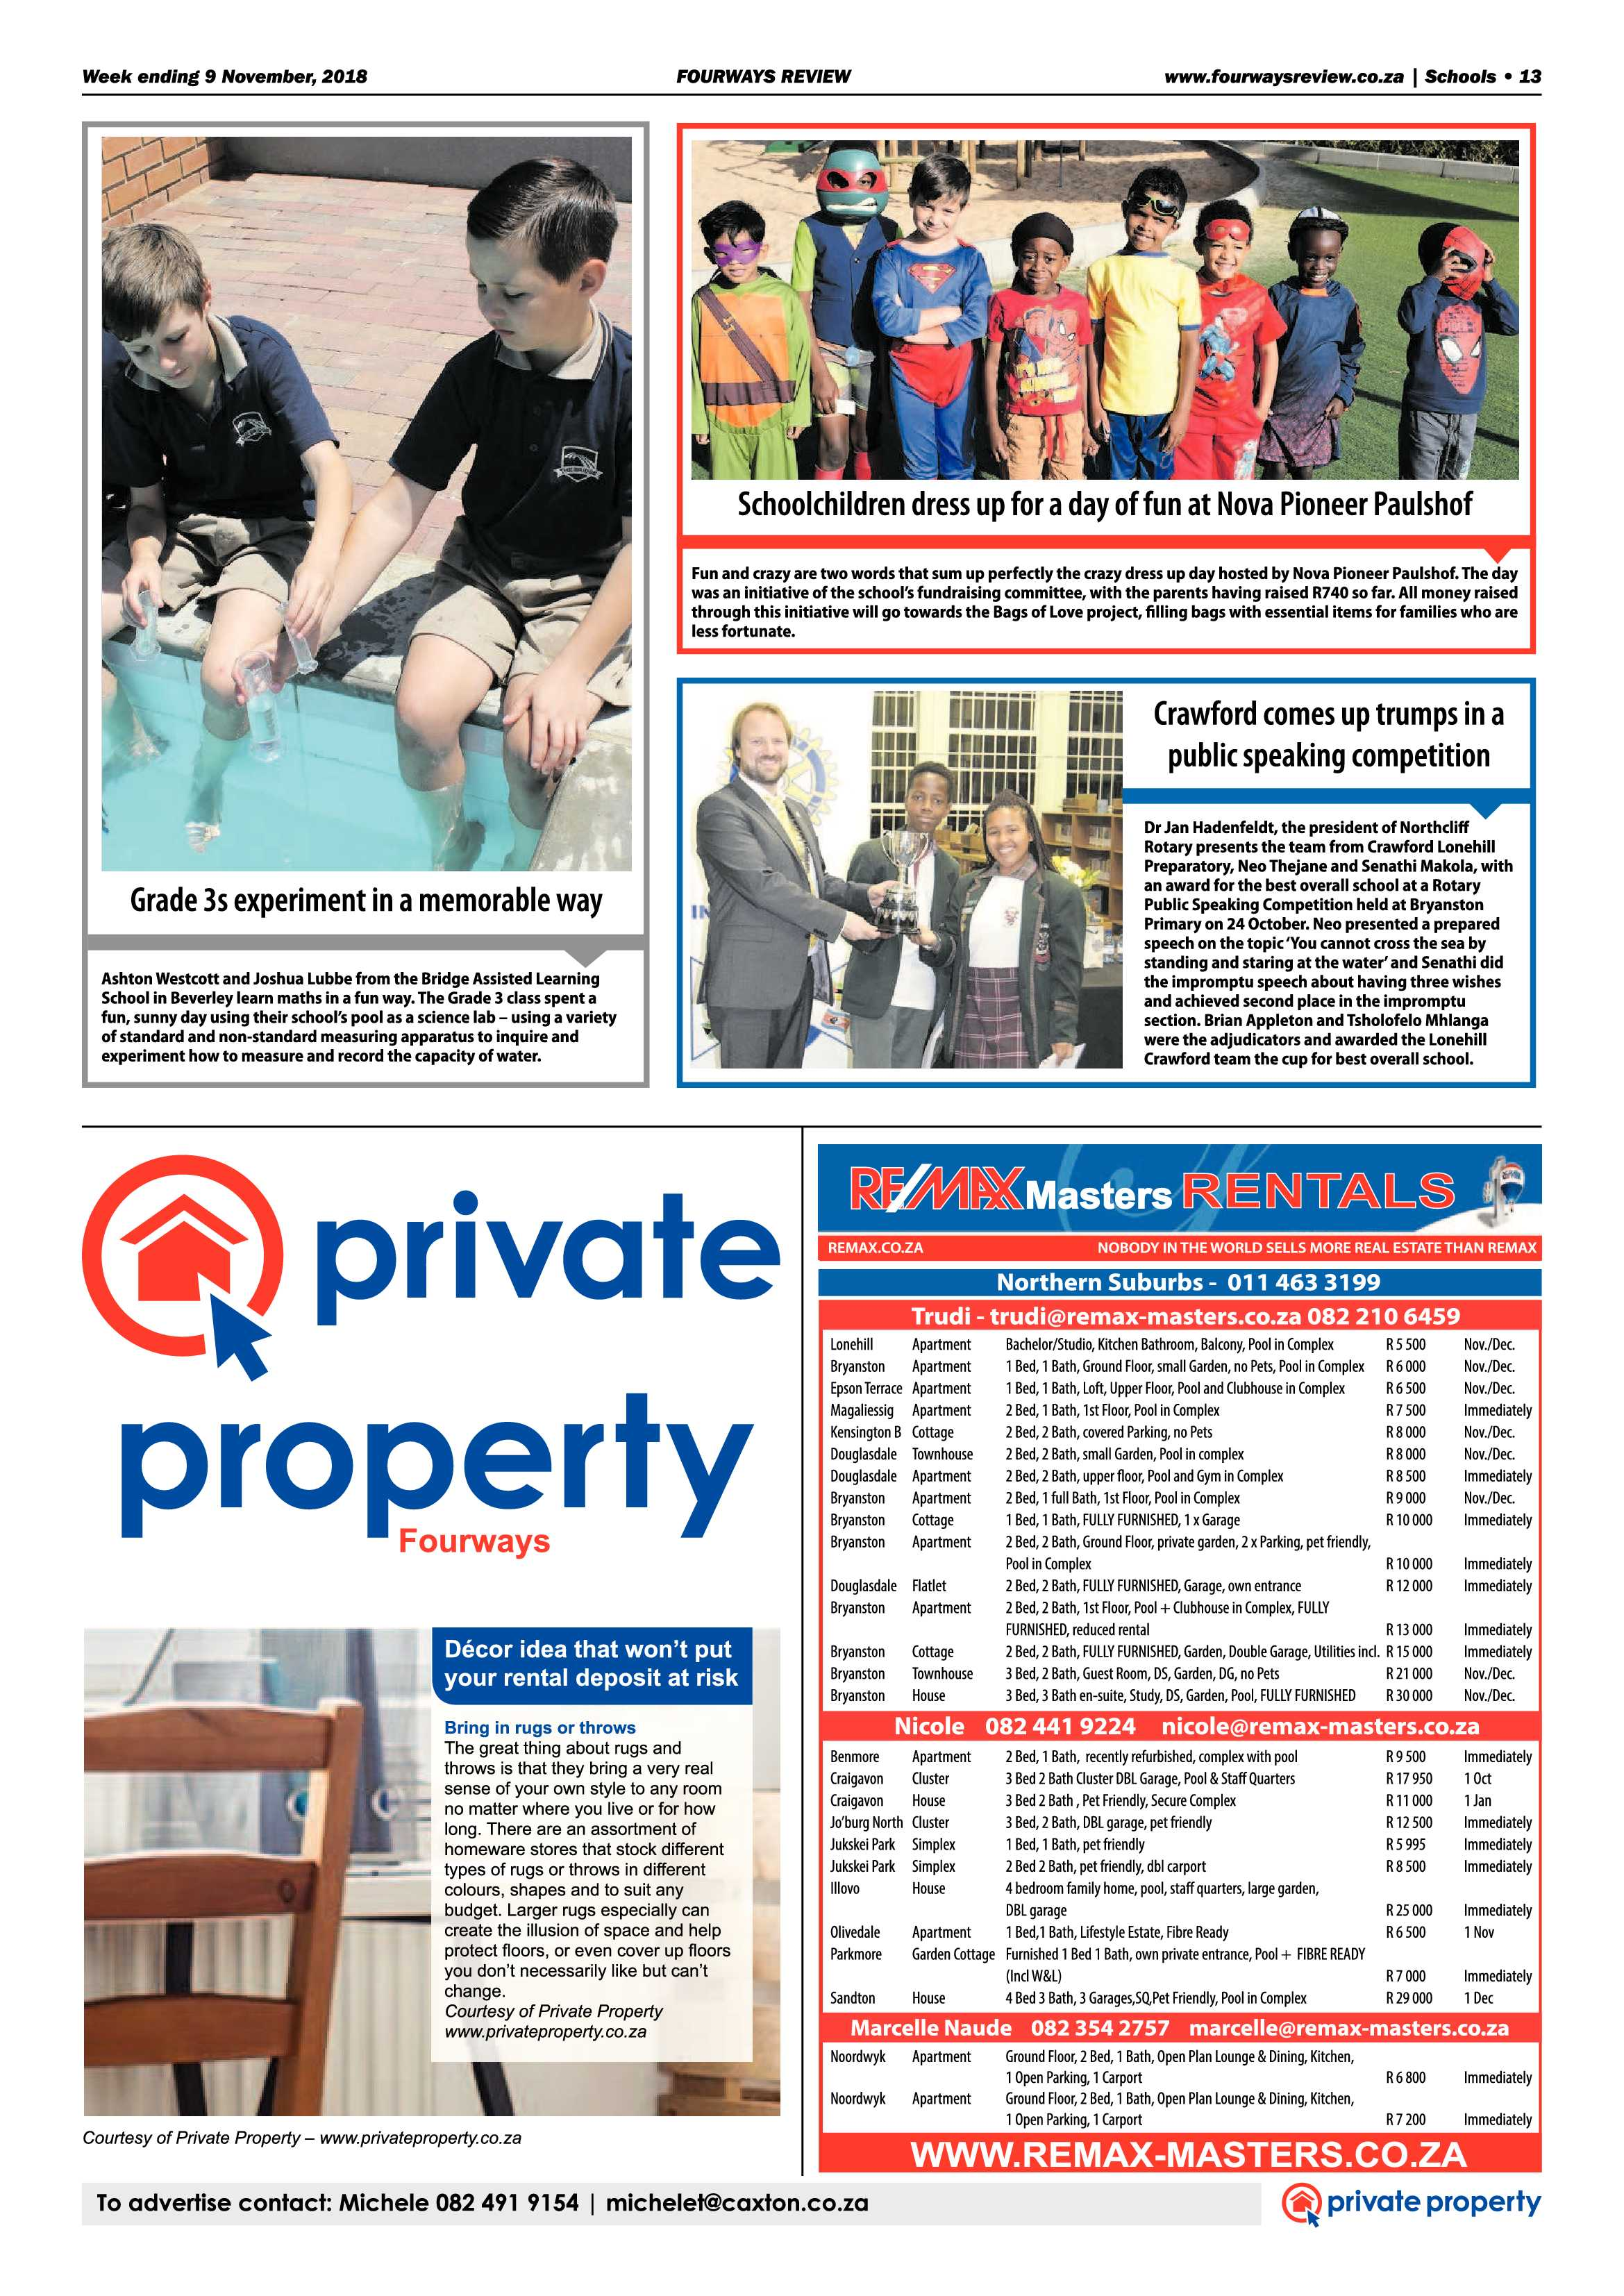 fourways-review-9-november-2018-epapers-page-13